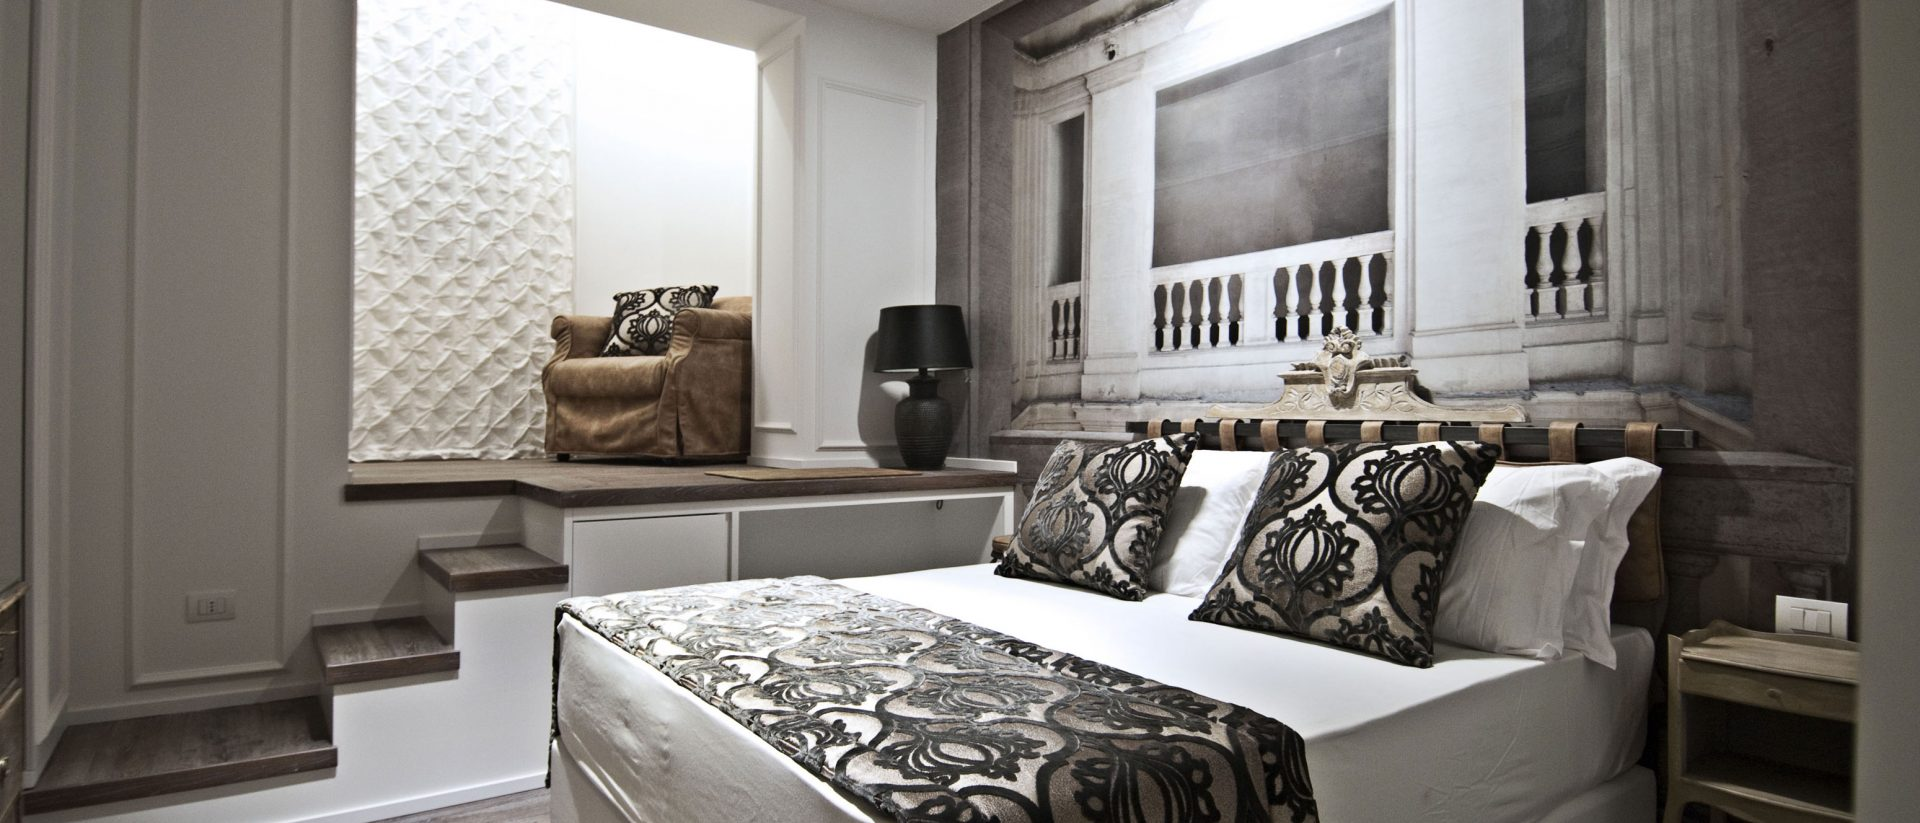 BDB Luxury Rooms Trastevere Torre | Luxury room in Rome in Trastevere